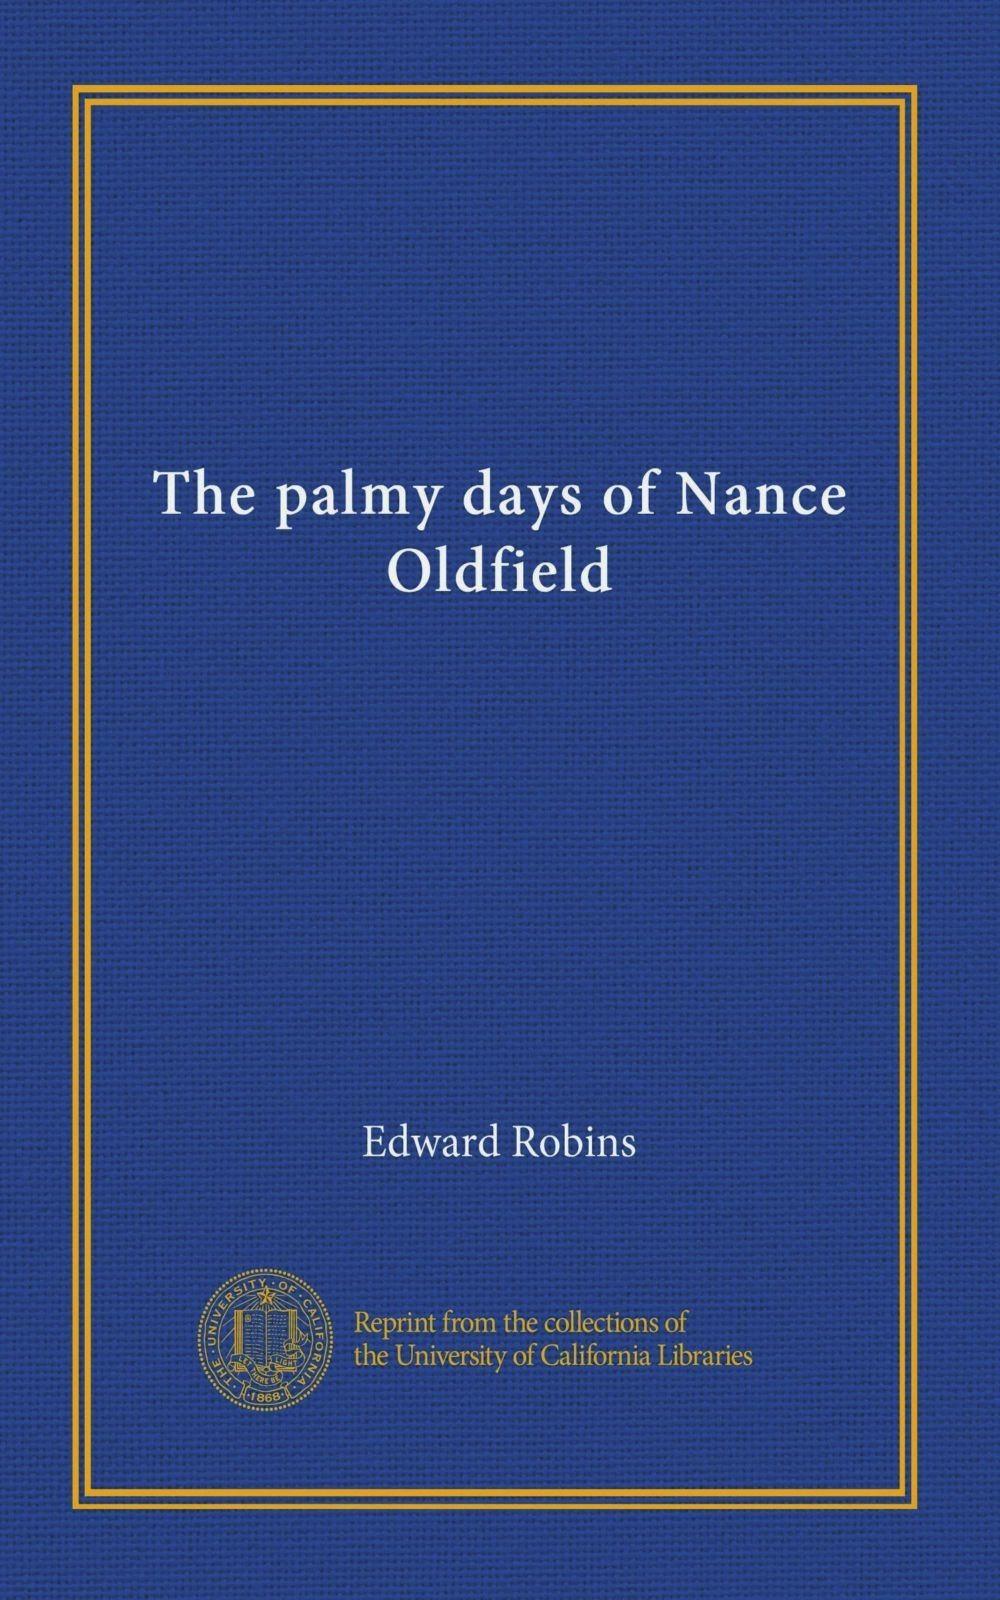 Download The palmy days of Nance Oldfield PDF